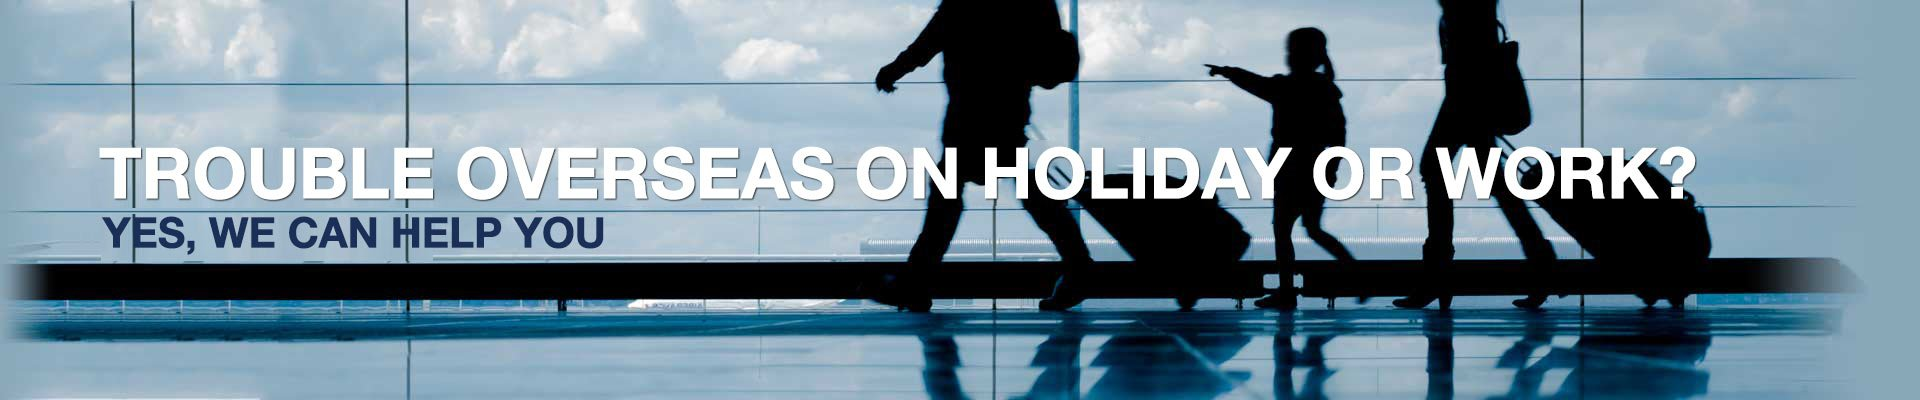 Trouble overseas on holiday or work?